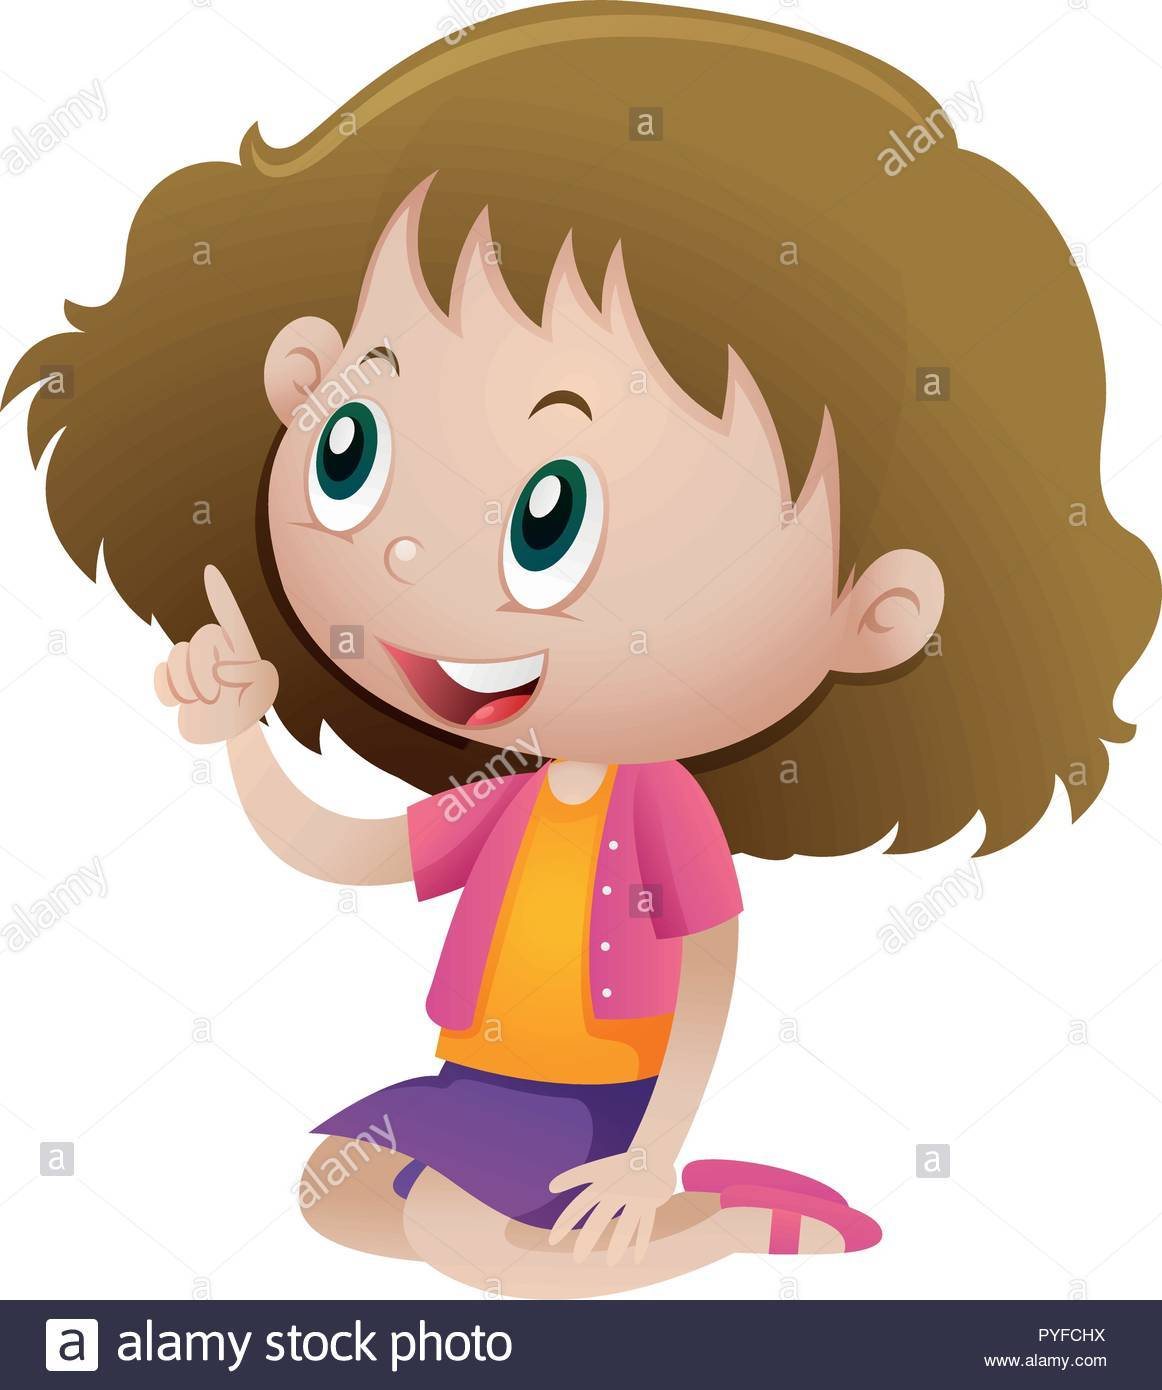 Girl pointing flowers clipart 6 » Clipart Portal.